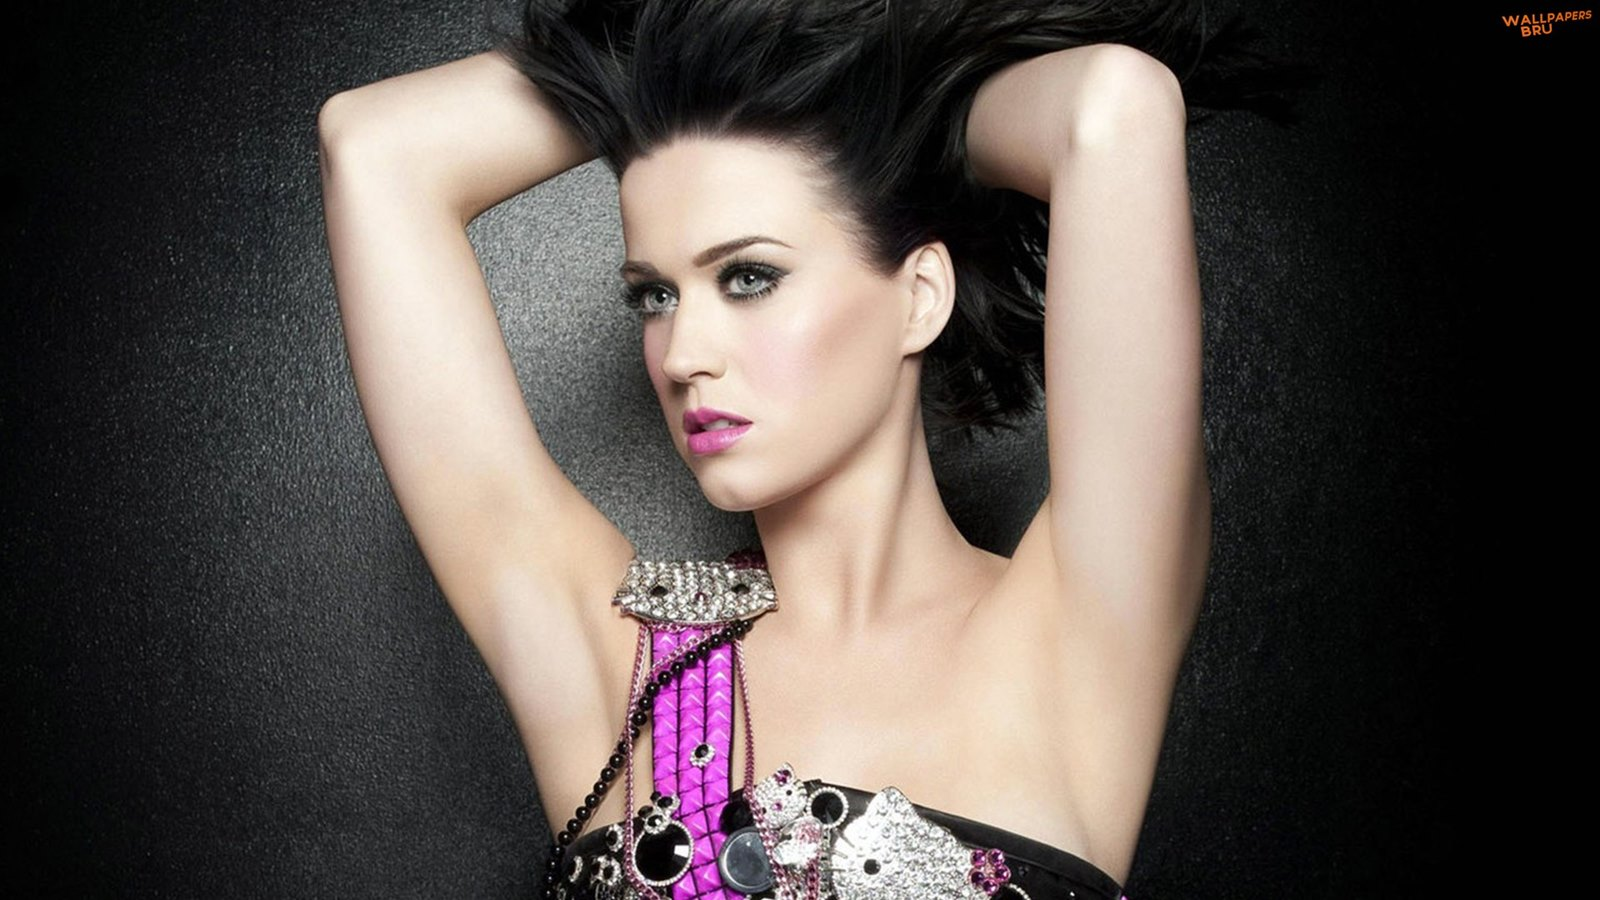 Katy Perry Celebrity Wallpaper 29 Hd - Katy Perry Firework Sing Movie , HD Wallpaper & Backgrounds